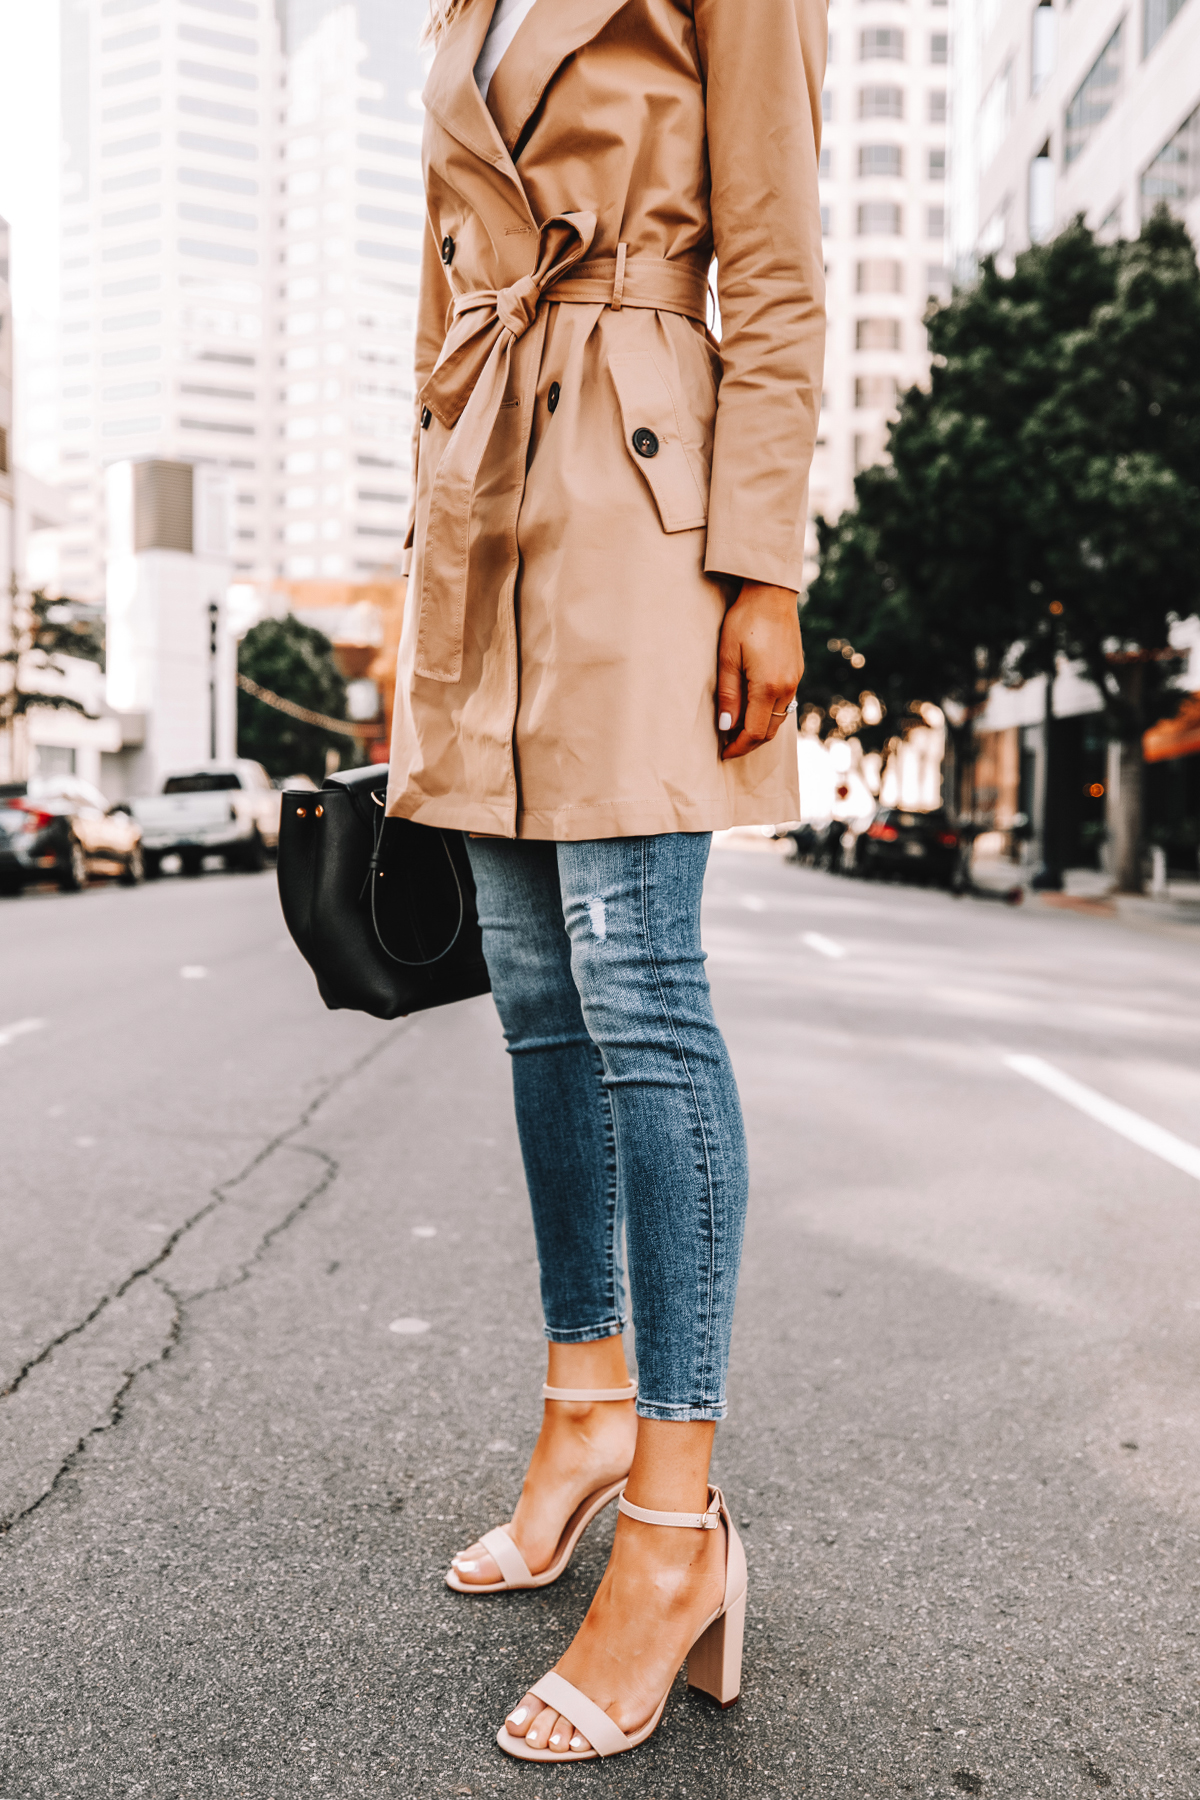 Fashion Jackson Wearing Amazon The Drop Trench Coat Skinny Jeans Nude Ankle Strap Heeled Sandals Street Style 1